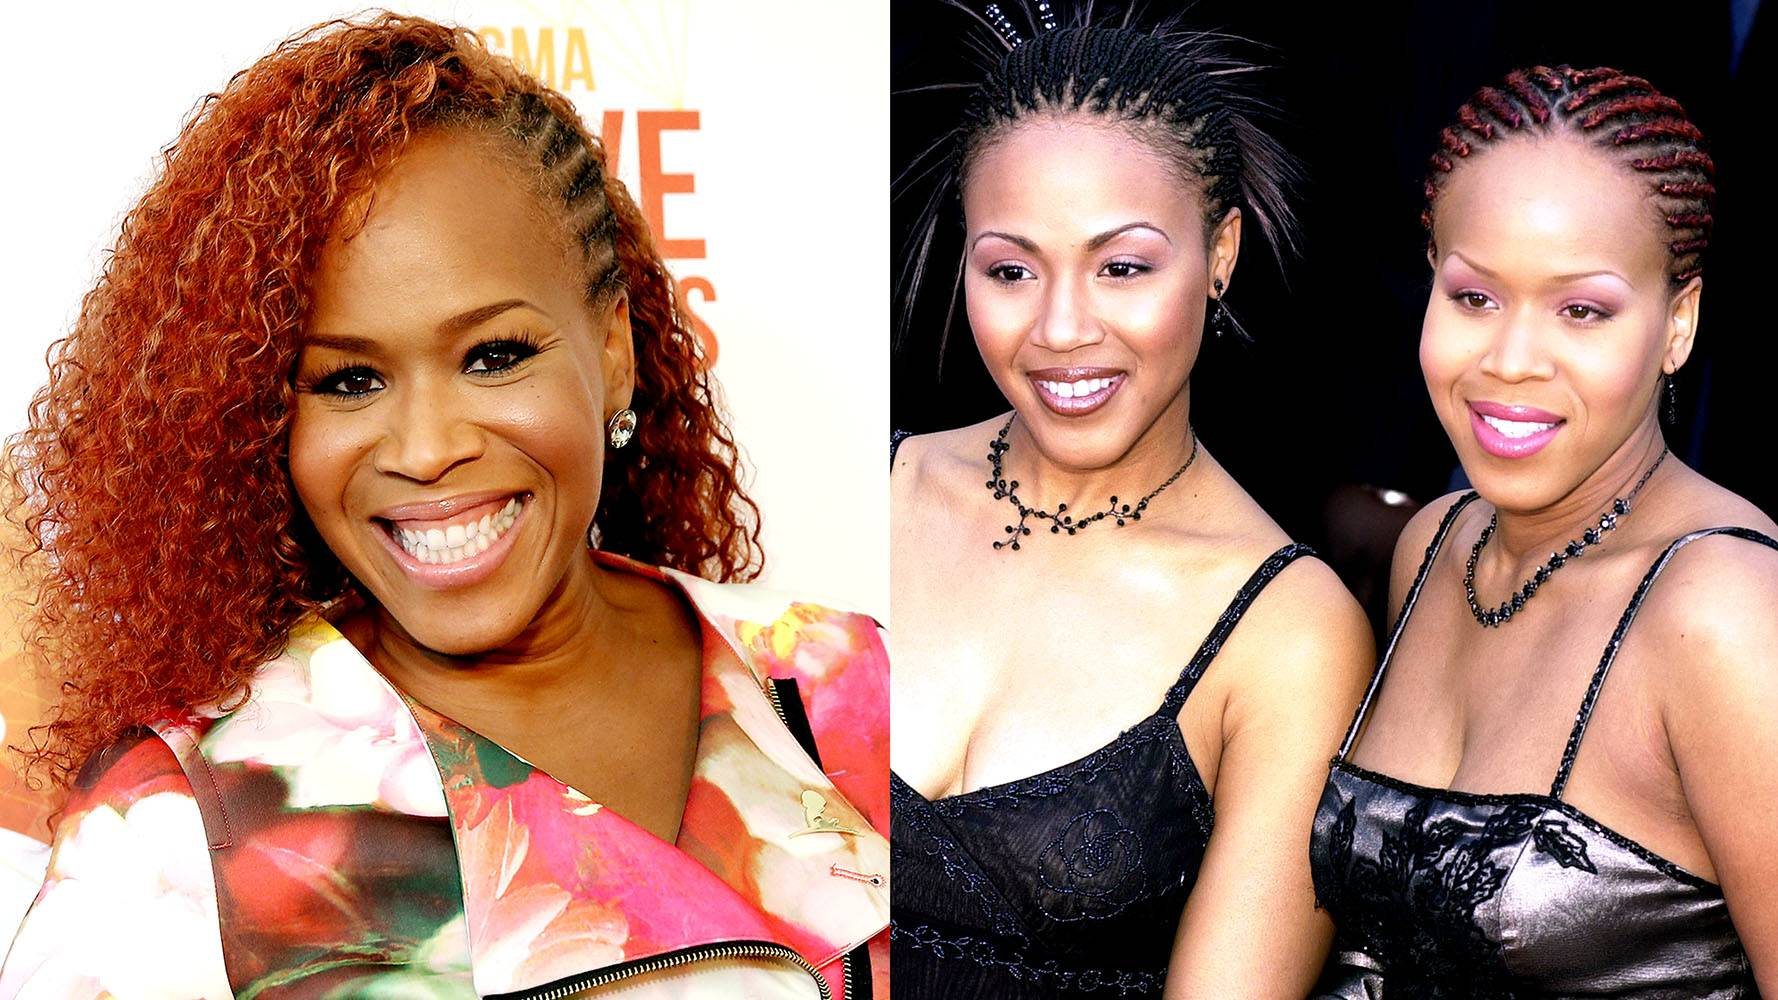 Tina Campbell | Mary Mary  - Although the Grammy Award-winning group Mary Mary might not be together anymore, that doesn't mean the two songstresses aren't still firing up some great tunes on their own. Right after Erica put out her amazing first solo album, Tina came out with one too, called It's Personal. (Photos from Left: Terry Wyatt/Getty Images for Dove Awards, Laura Farr/Newsmakers/Getty Images)